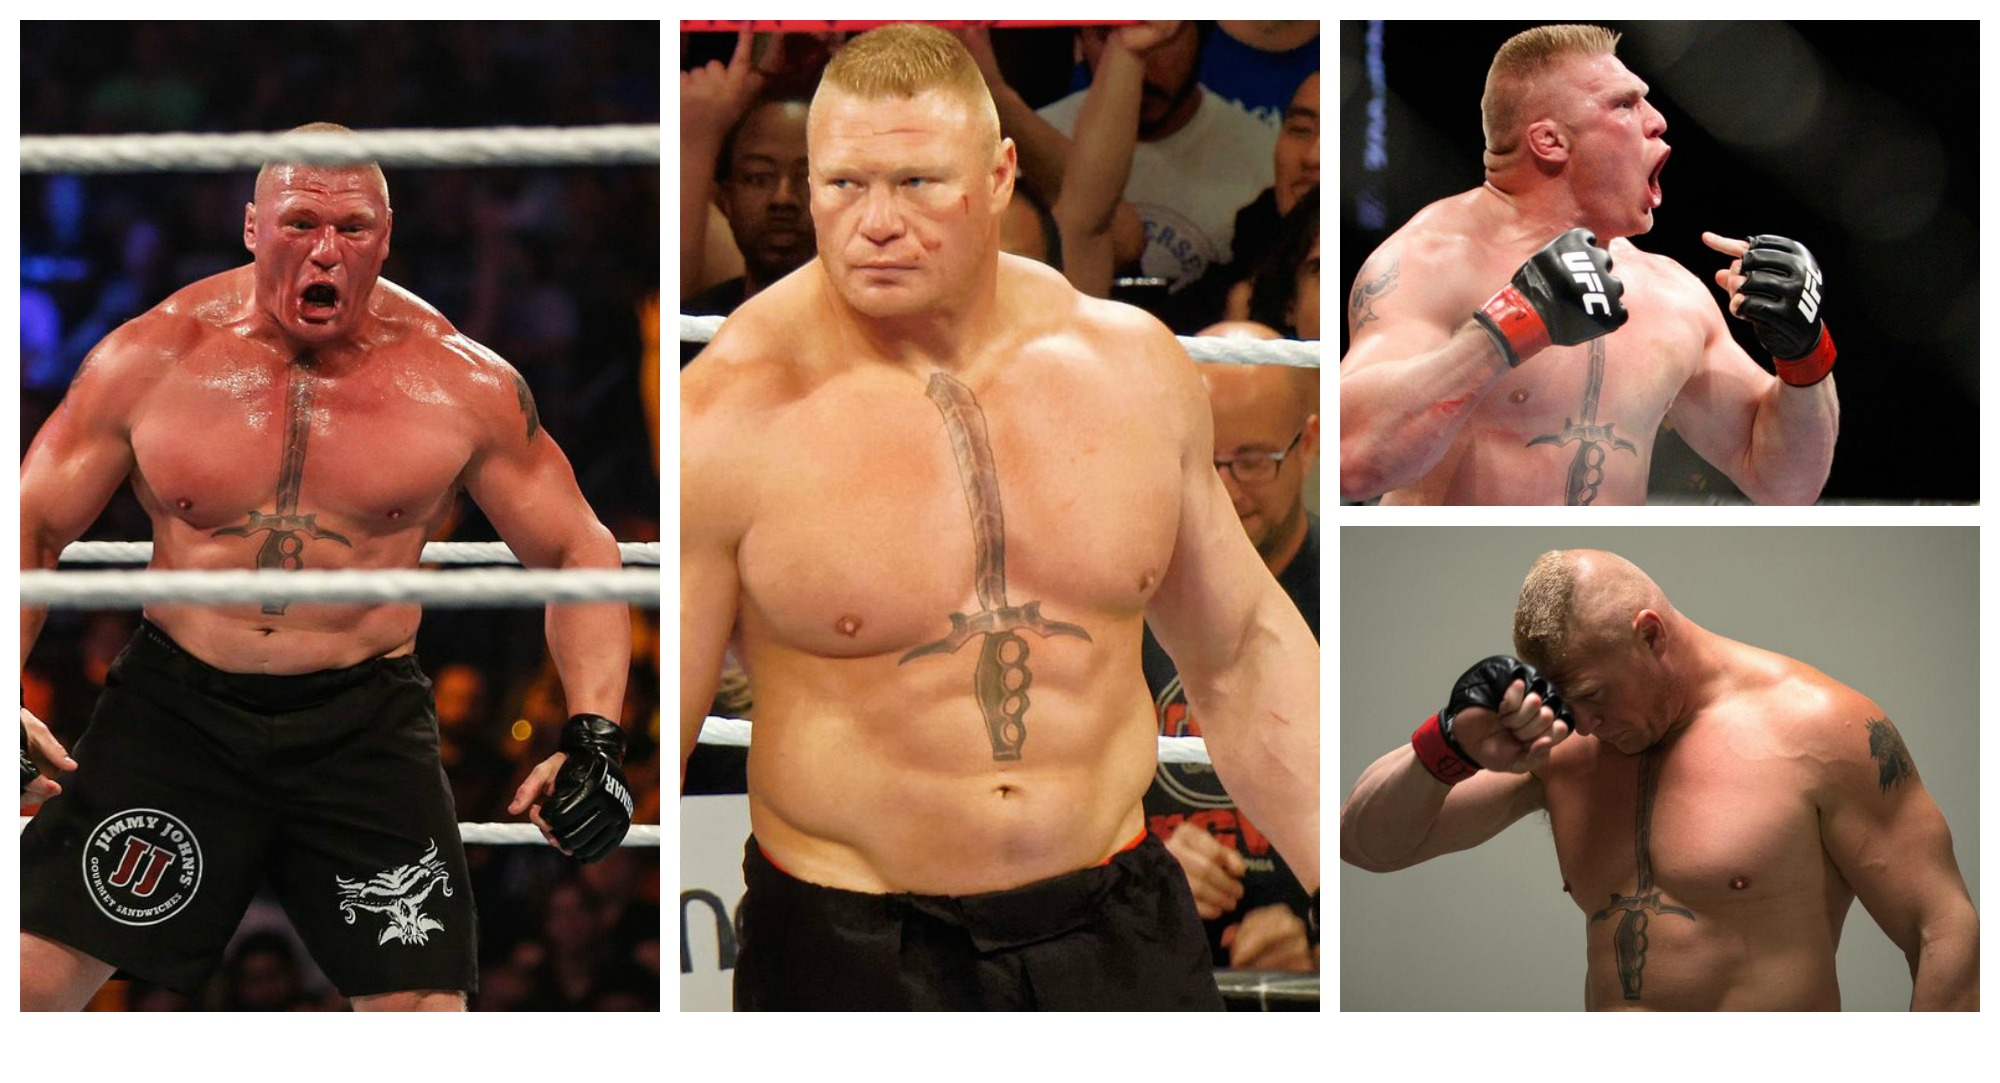 Is Brock Lesnar Attempting A UFC Comeback?